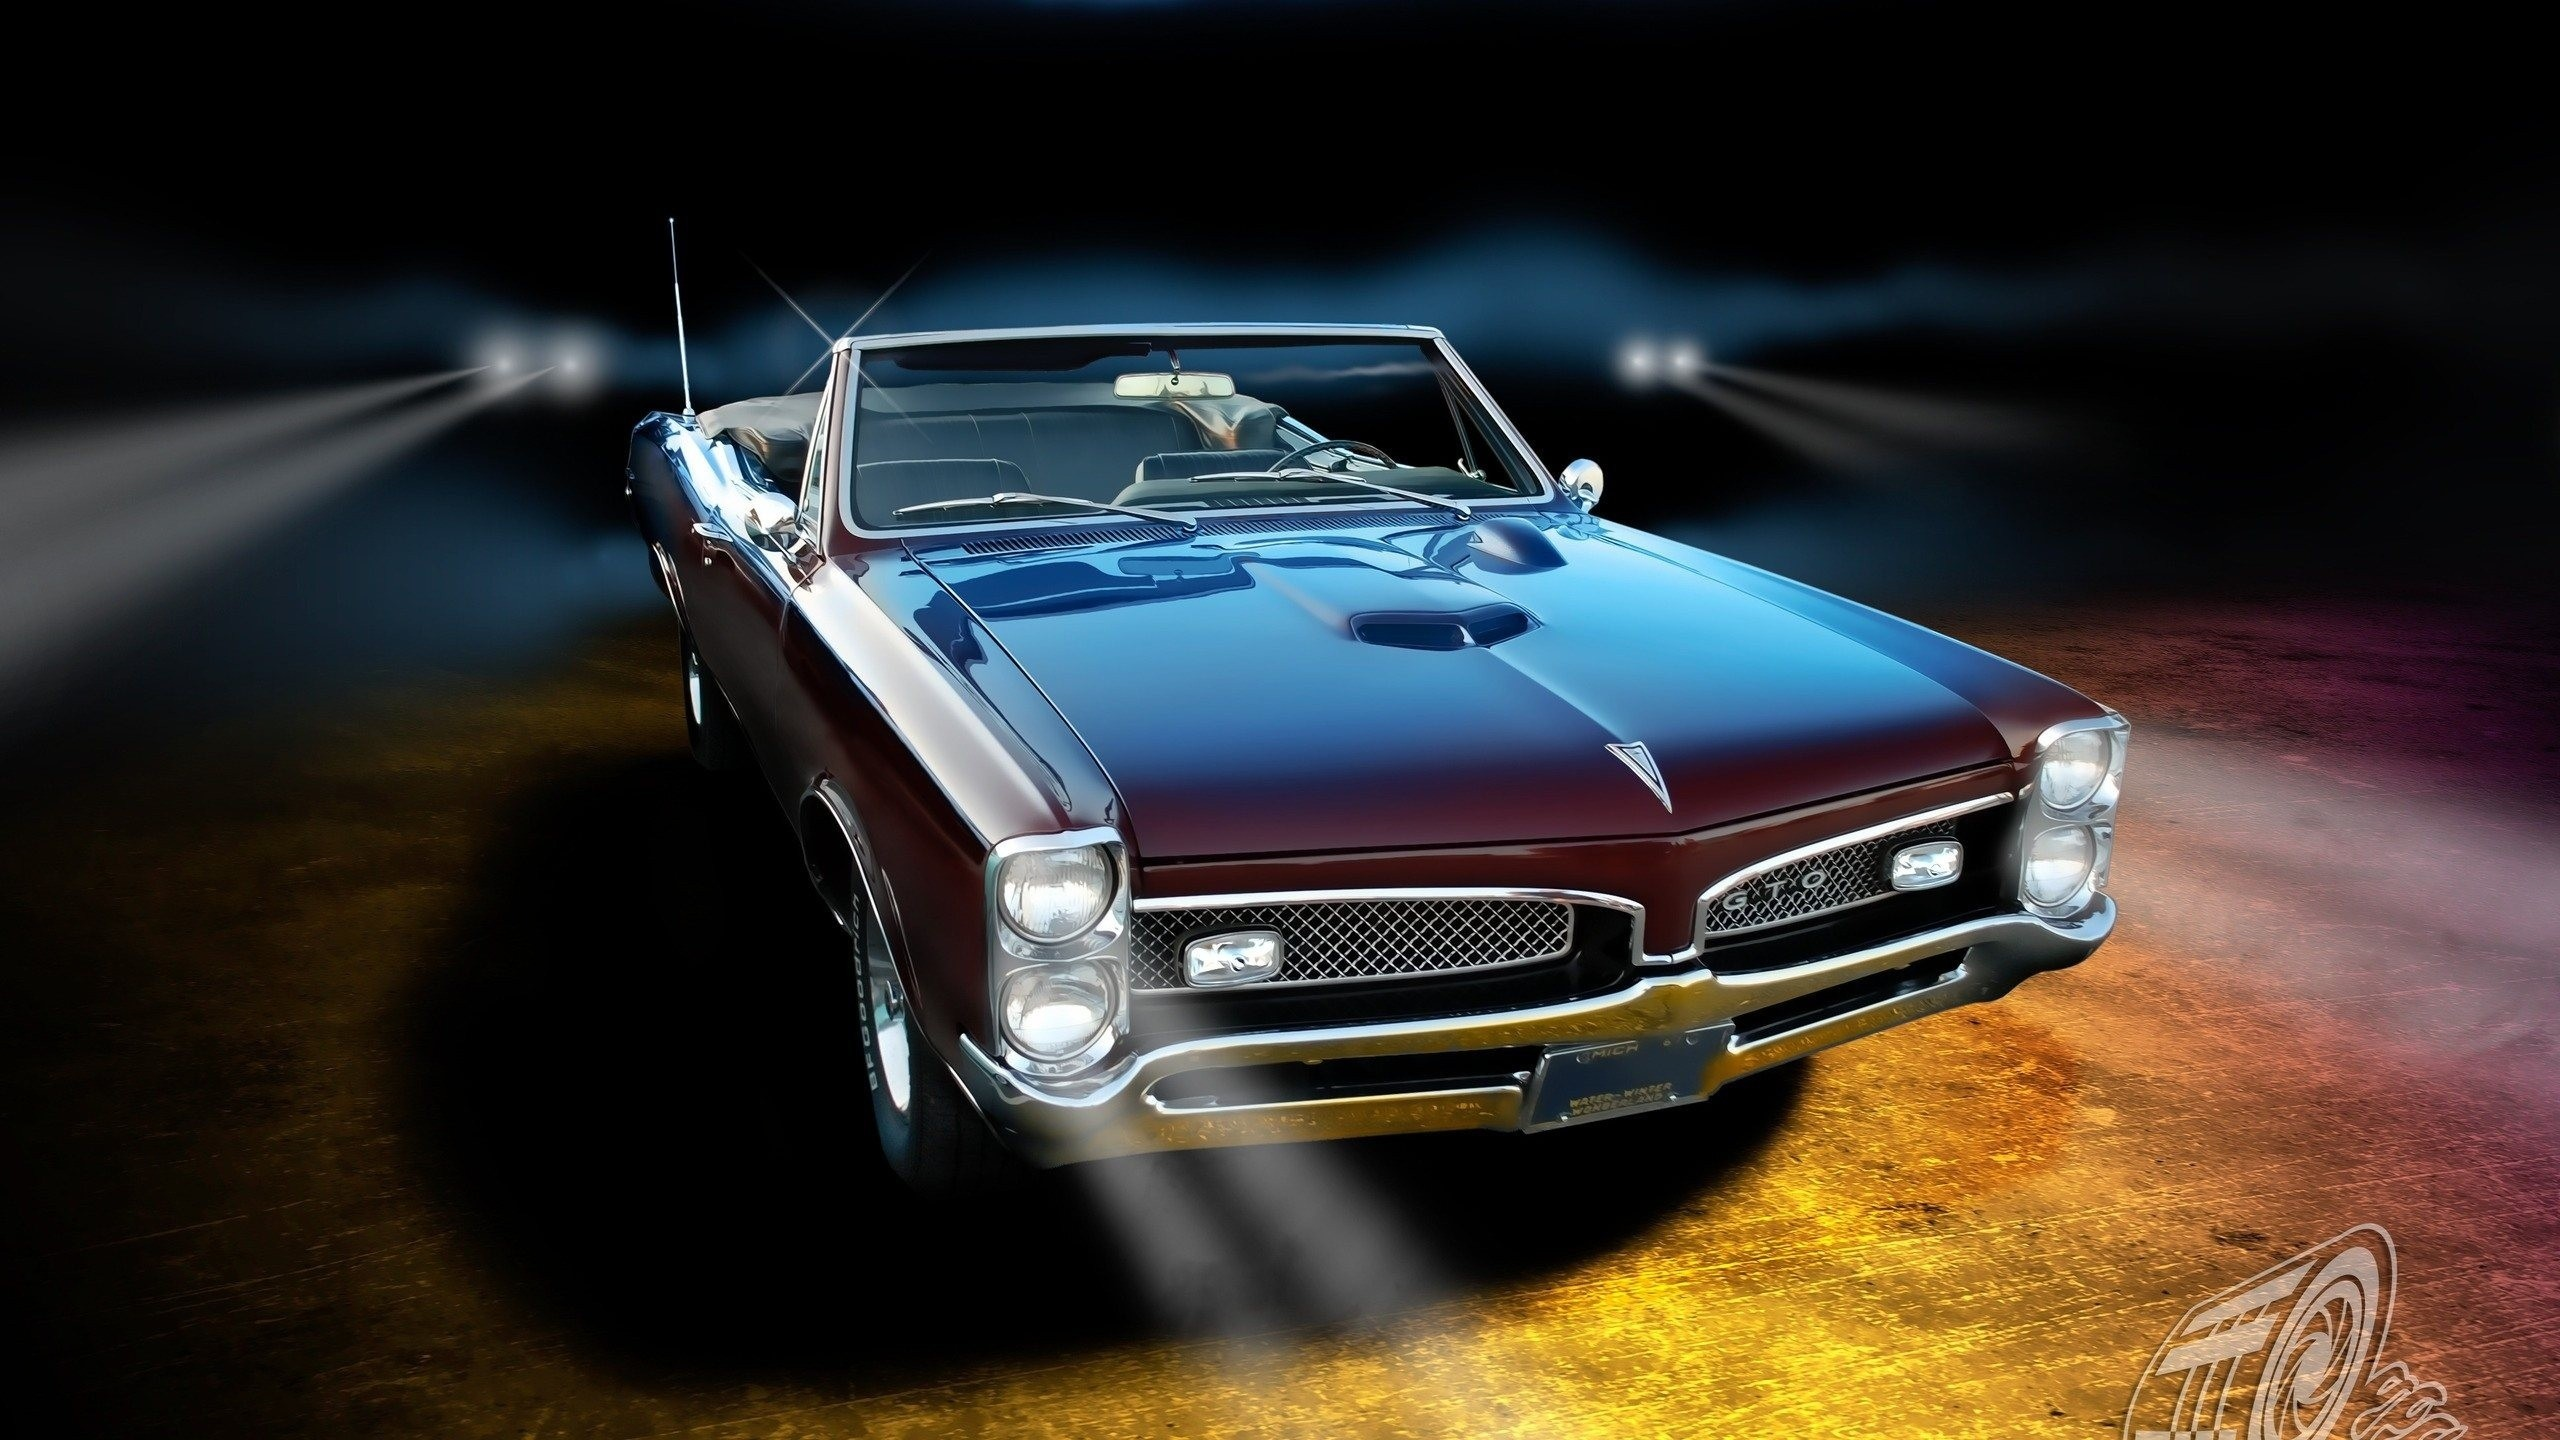 1920x1200 Muscle Cars | American Muscle Car Wallpaper 5673 Hd Wallpapers In  Cars   Imagesci .